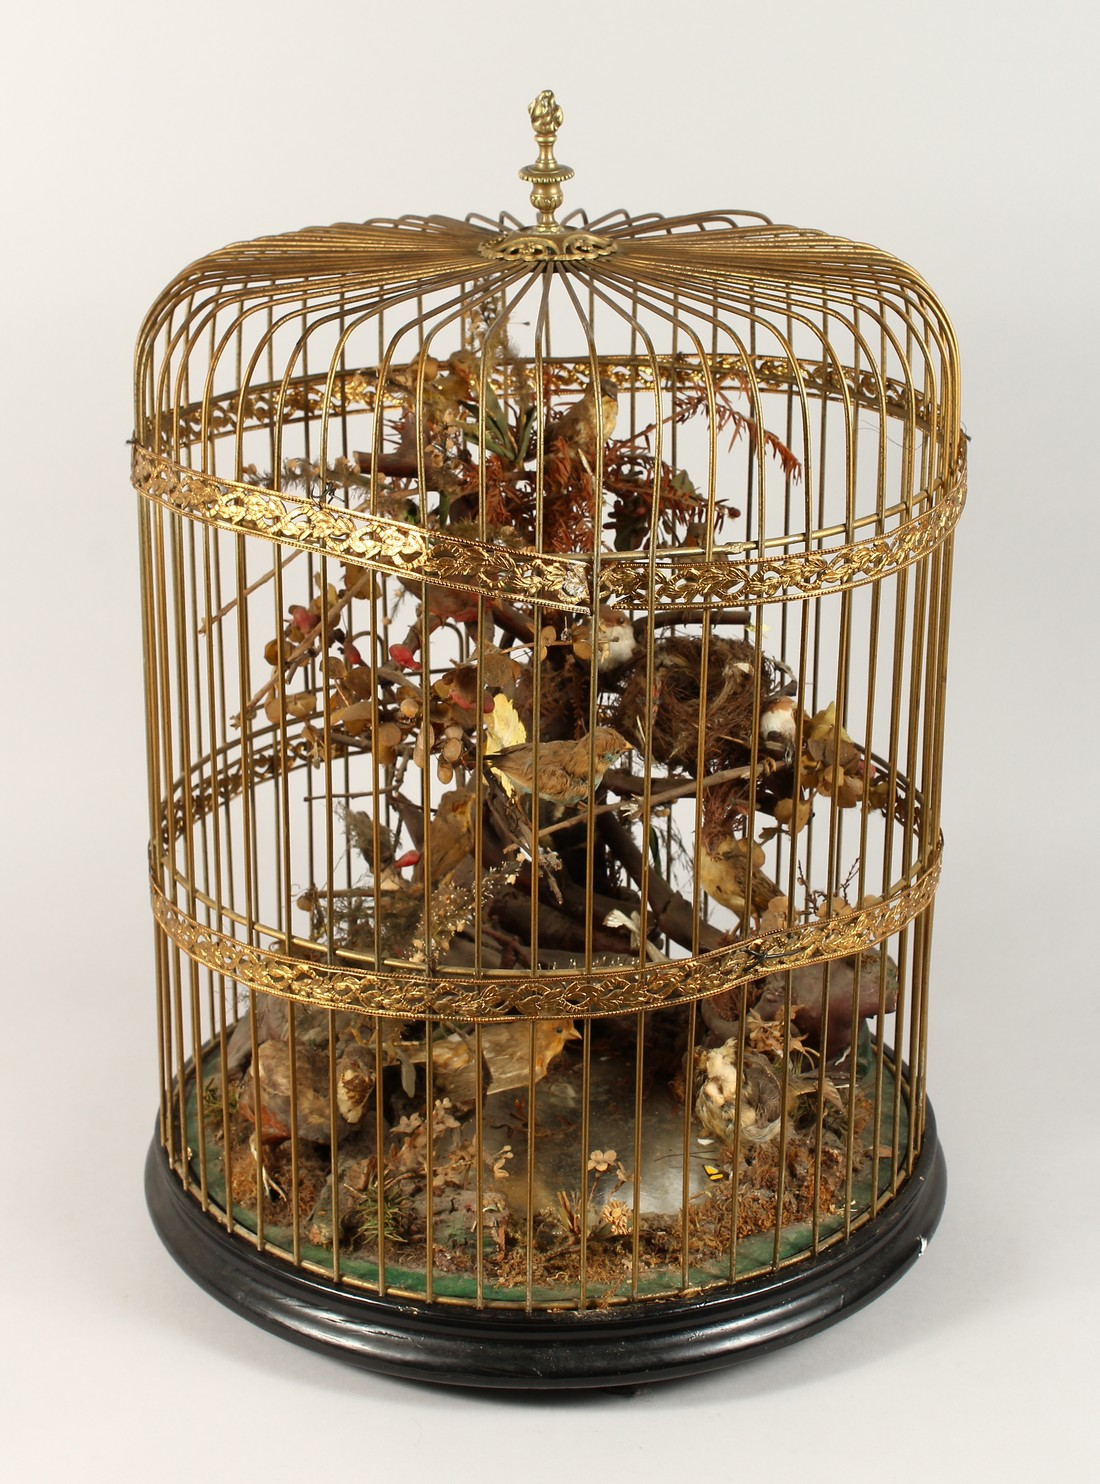 TAXIDERMY - VARIOUS SMALL BIRDS IN A METAL CAGE. Cage 23 ins tall